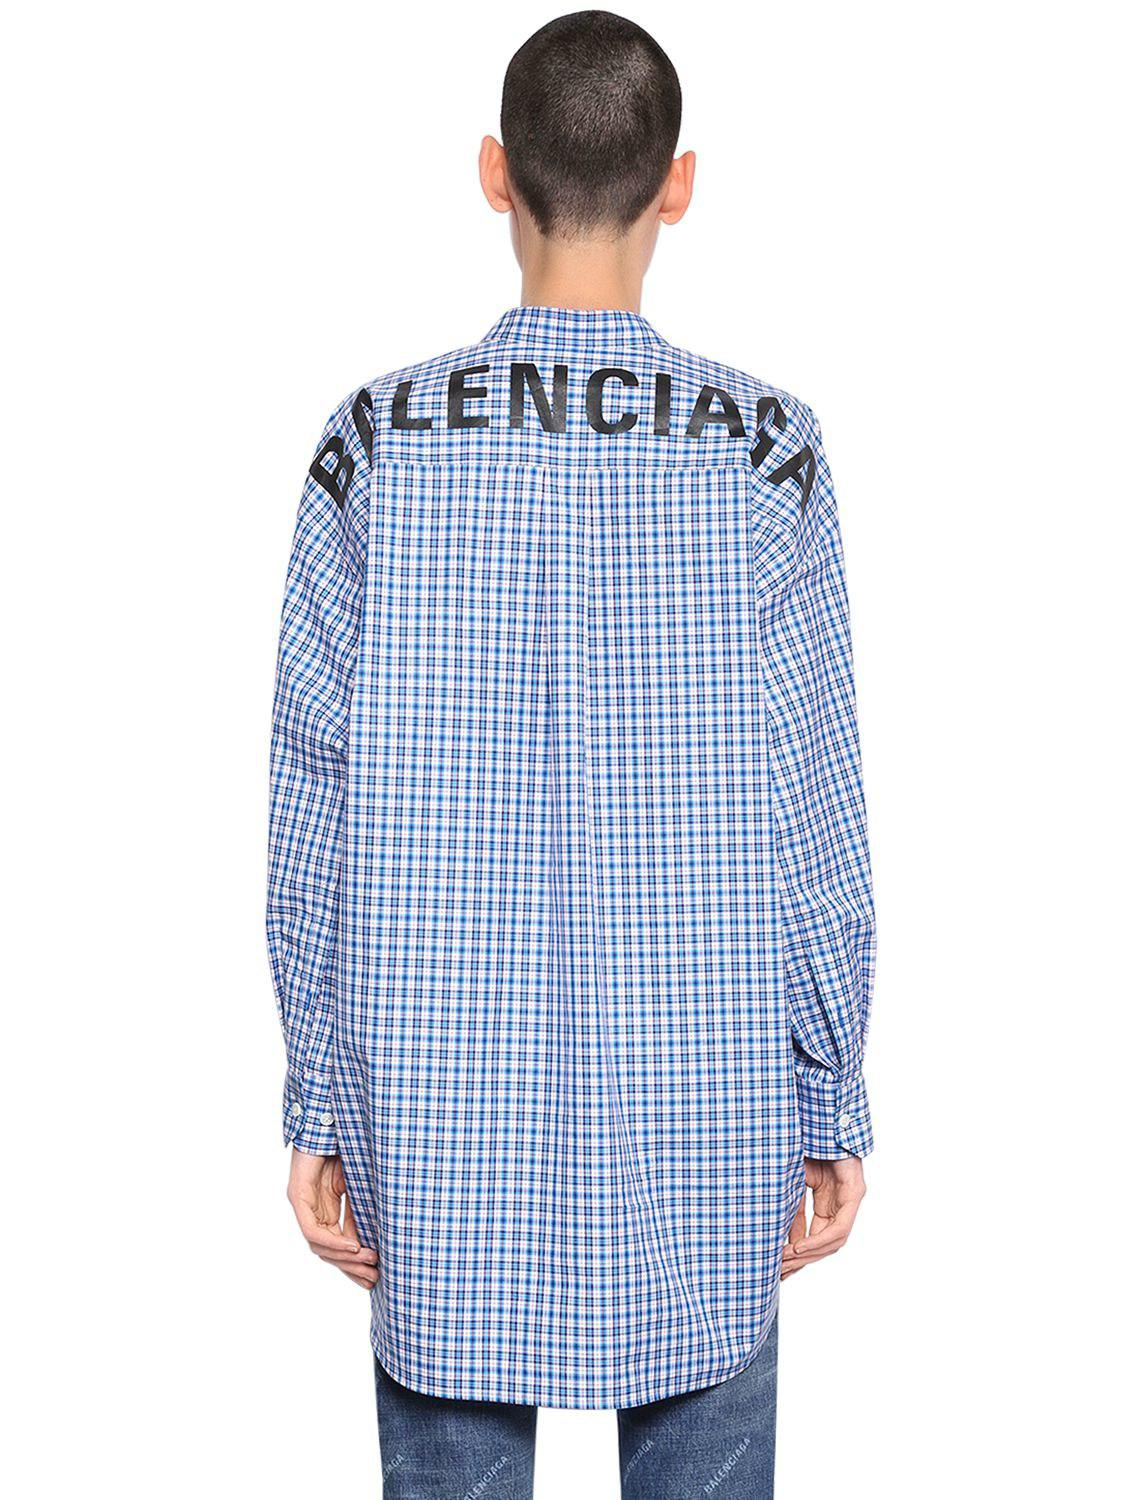 07a6102b4c59 Balenciaga Logo Printed Check Cotton Poplin Shirt in Blue - Lyst